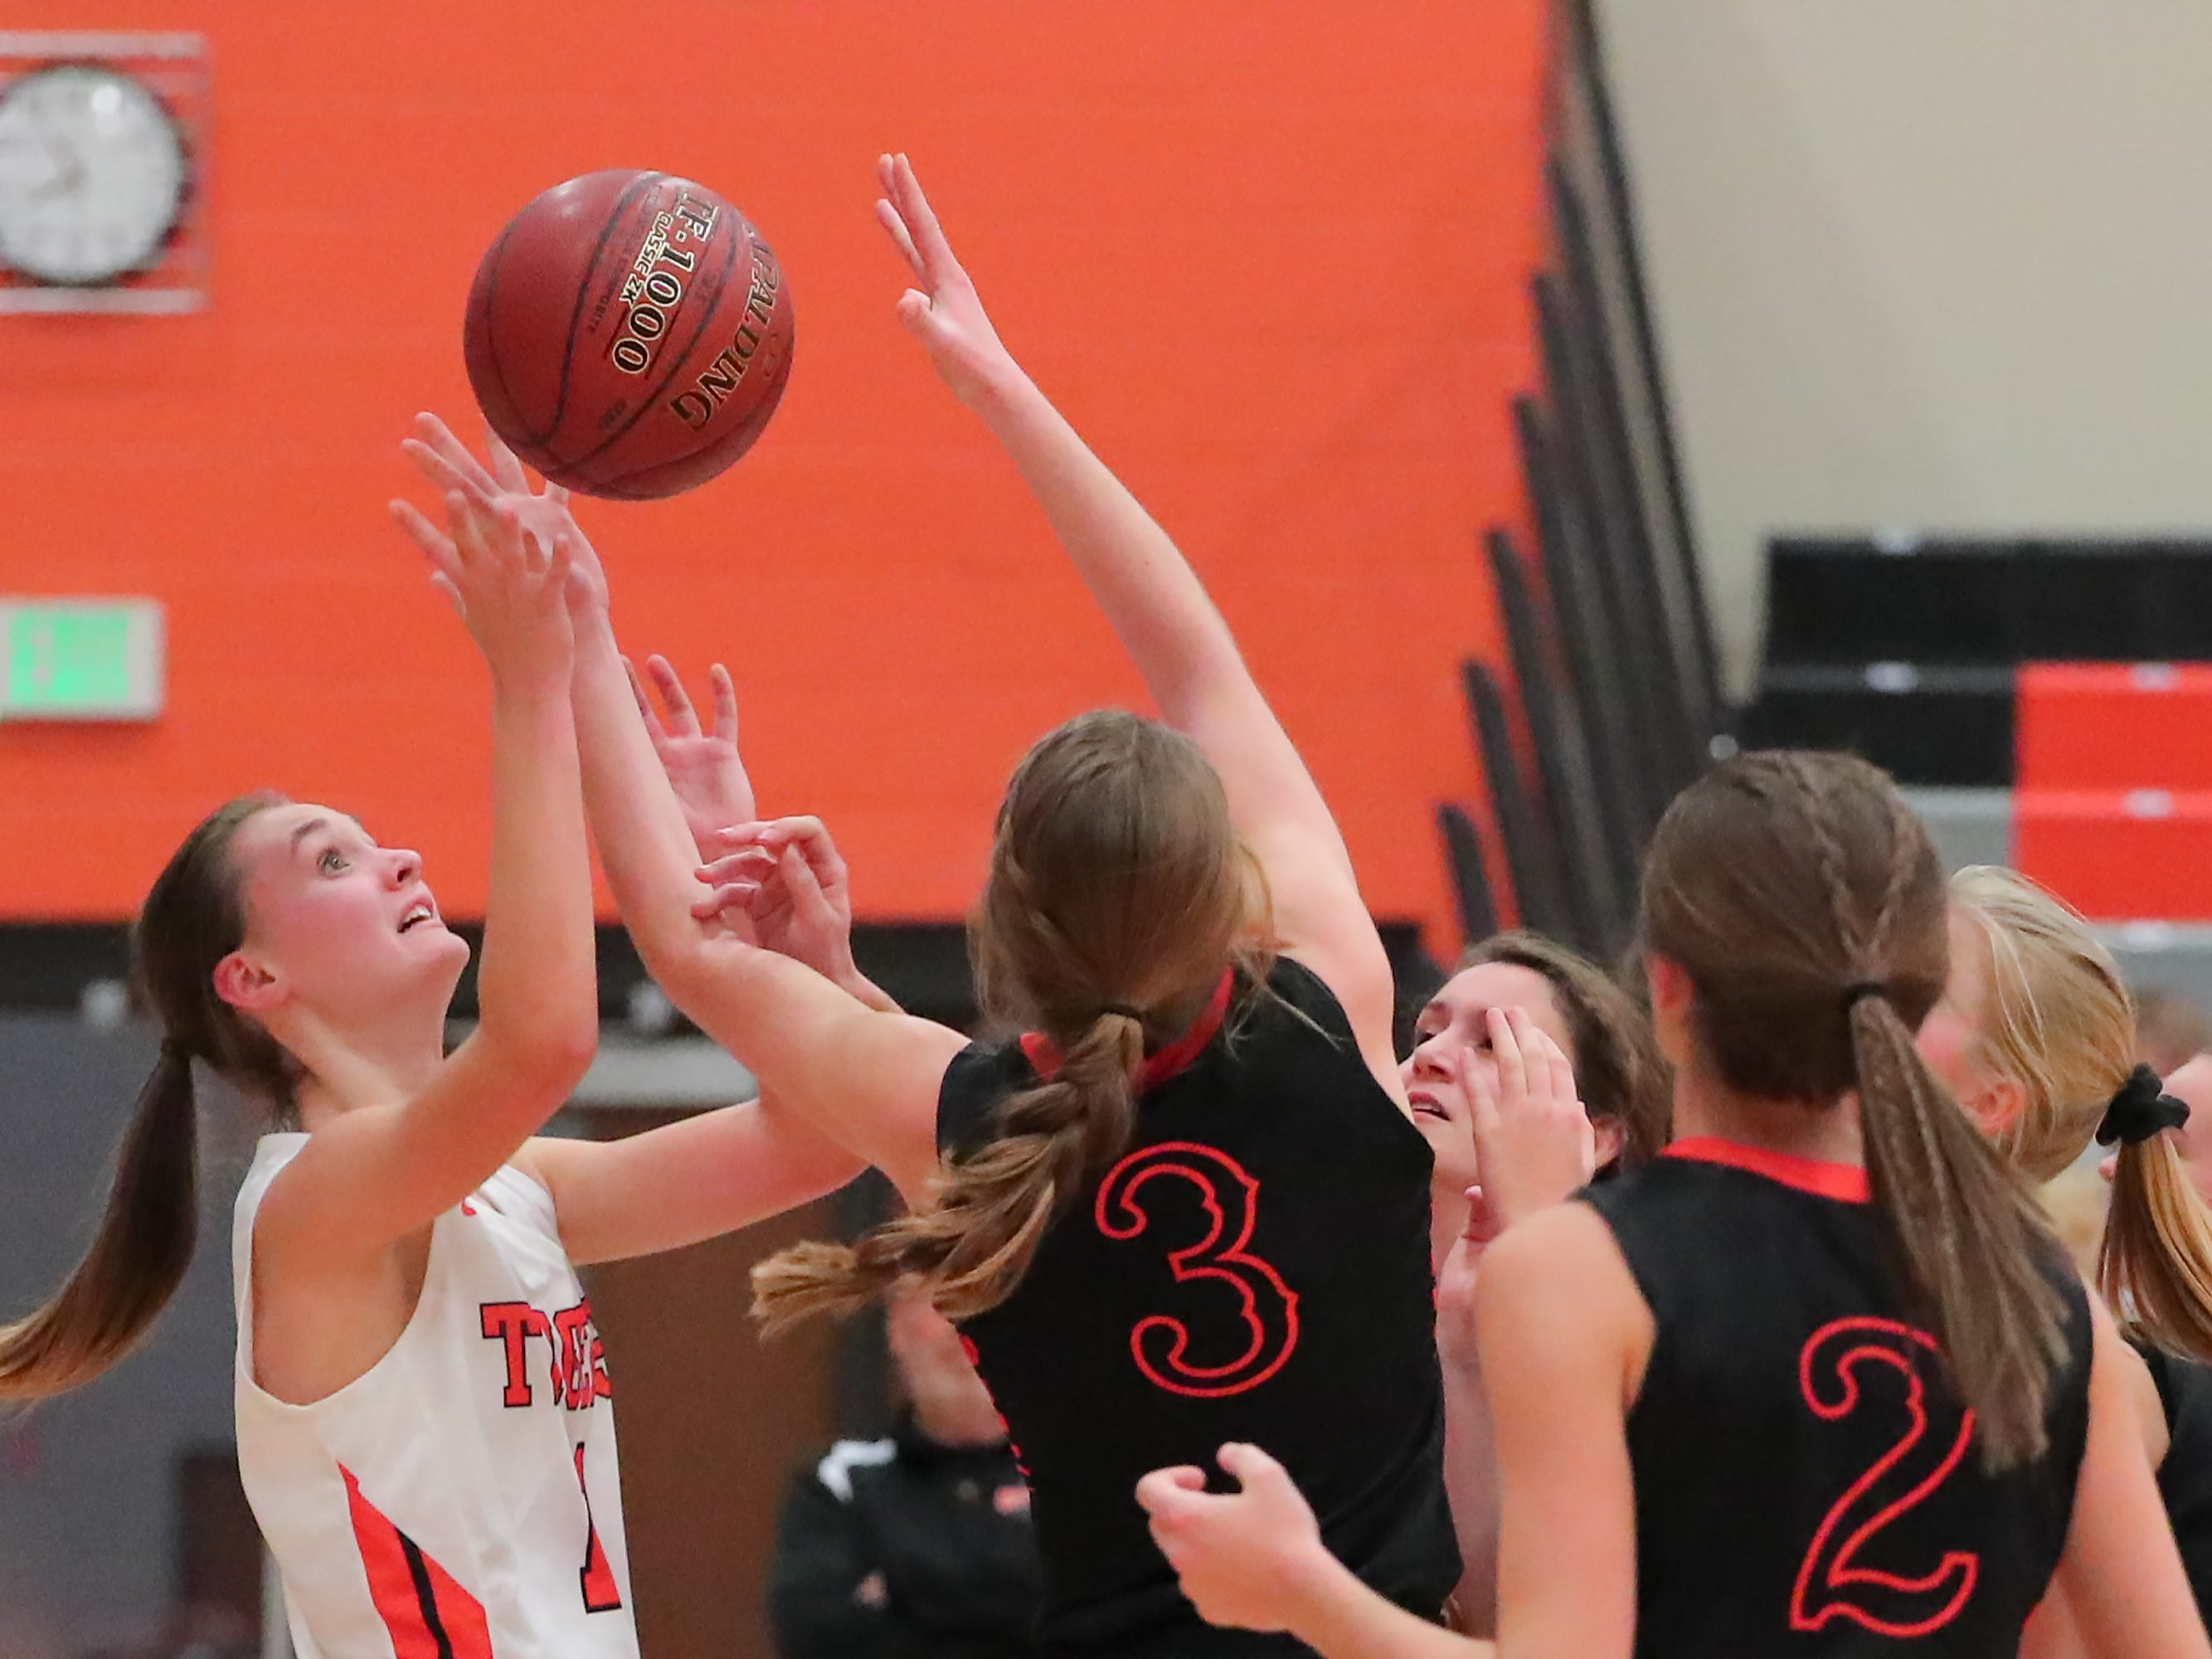 Lexi Miller (11) of Ripon and Rebecca Kingsland (3) of North Fond du Lac fight for a rebound. The Ripon Tigers hosted the North Fond du Lac Orioles in a non-conference basketball game Thursday evening, November 15, 2018.